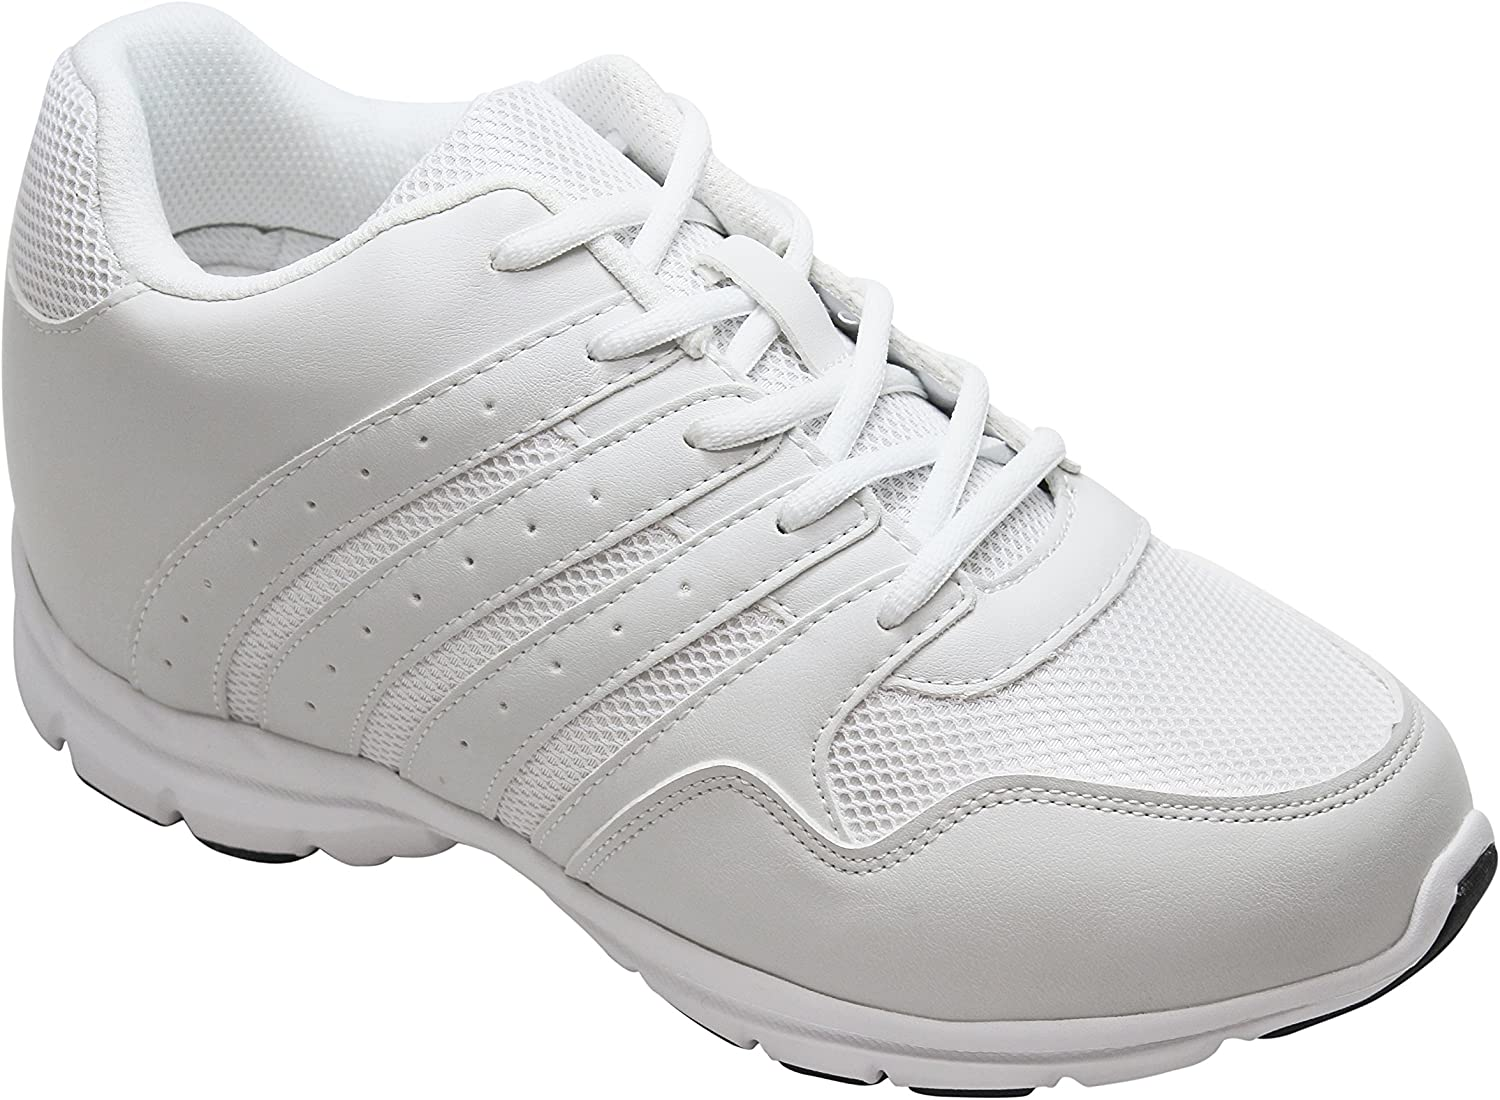 CALTO Men's Invisible Height Increasing Elevator shoes - White Leather Mesh Lace-up Lightweight Sporty Trainer Sneakers - 3.2 Inches Taller - G8818